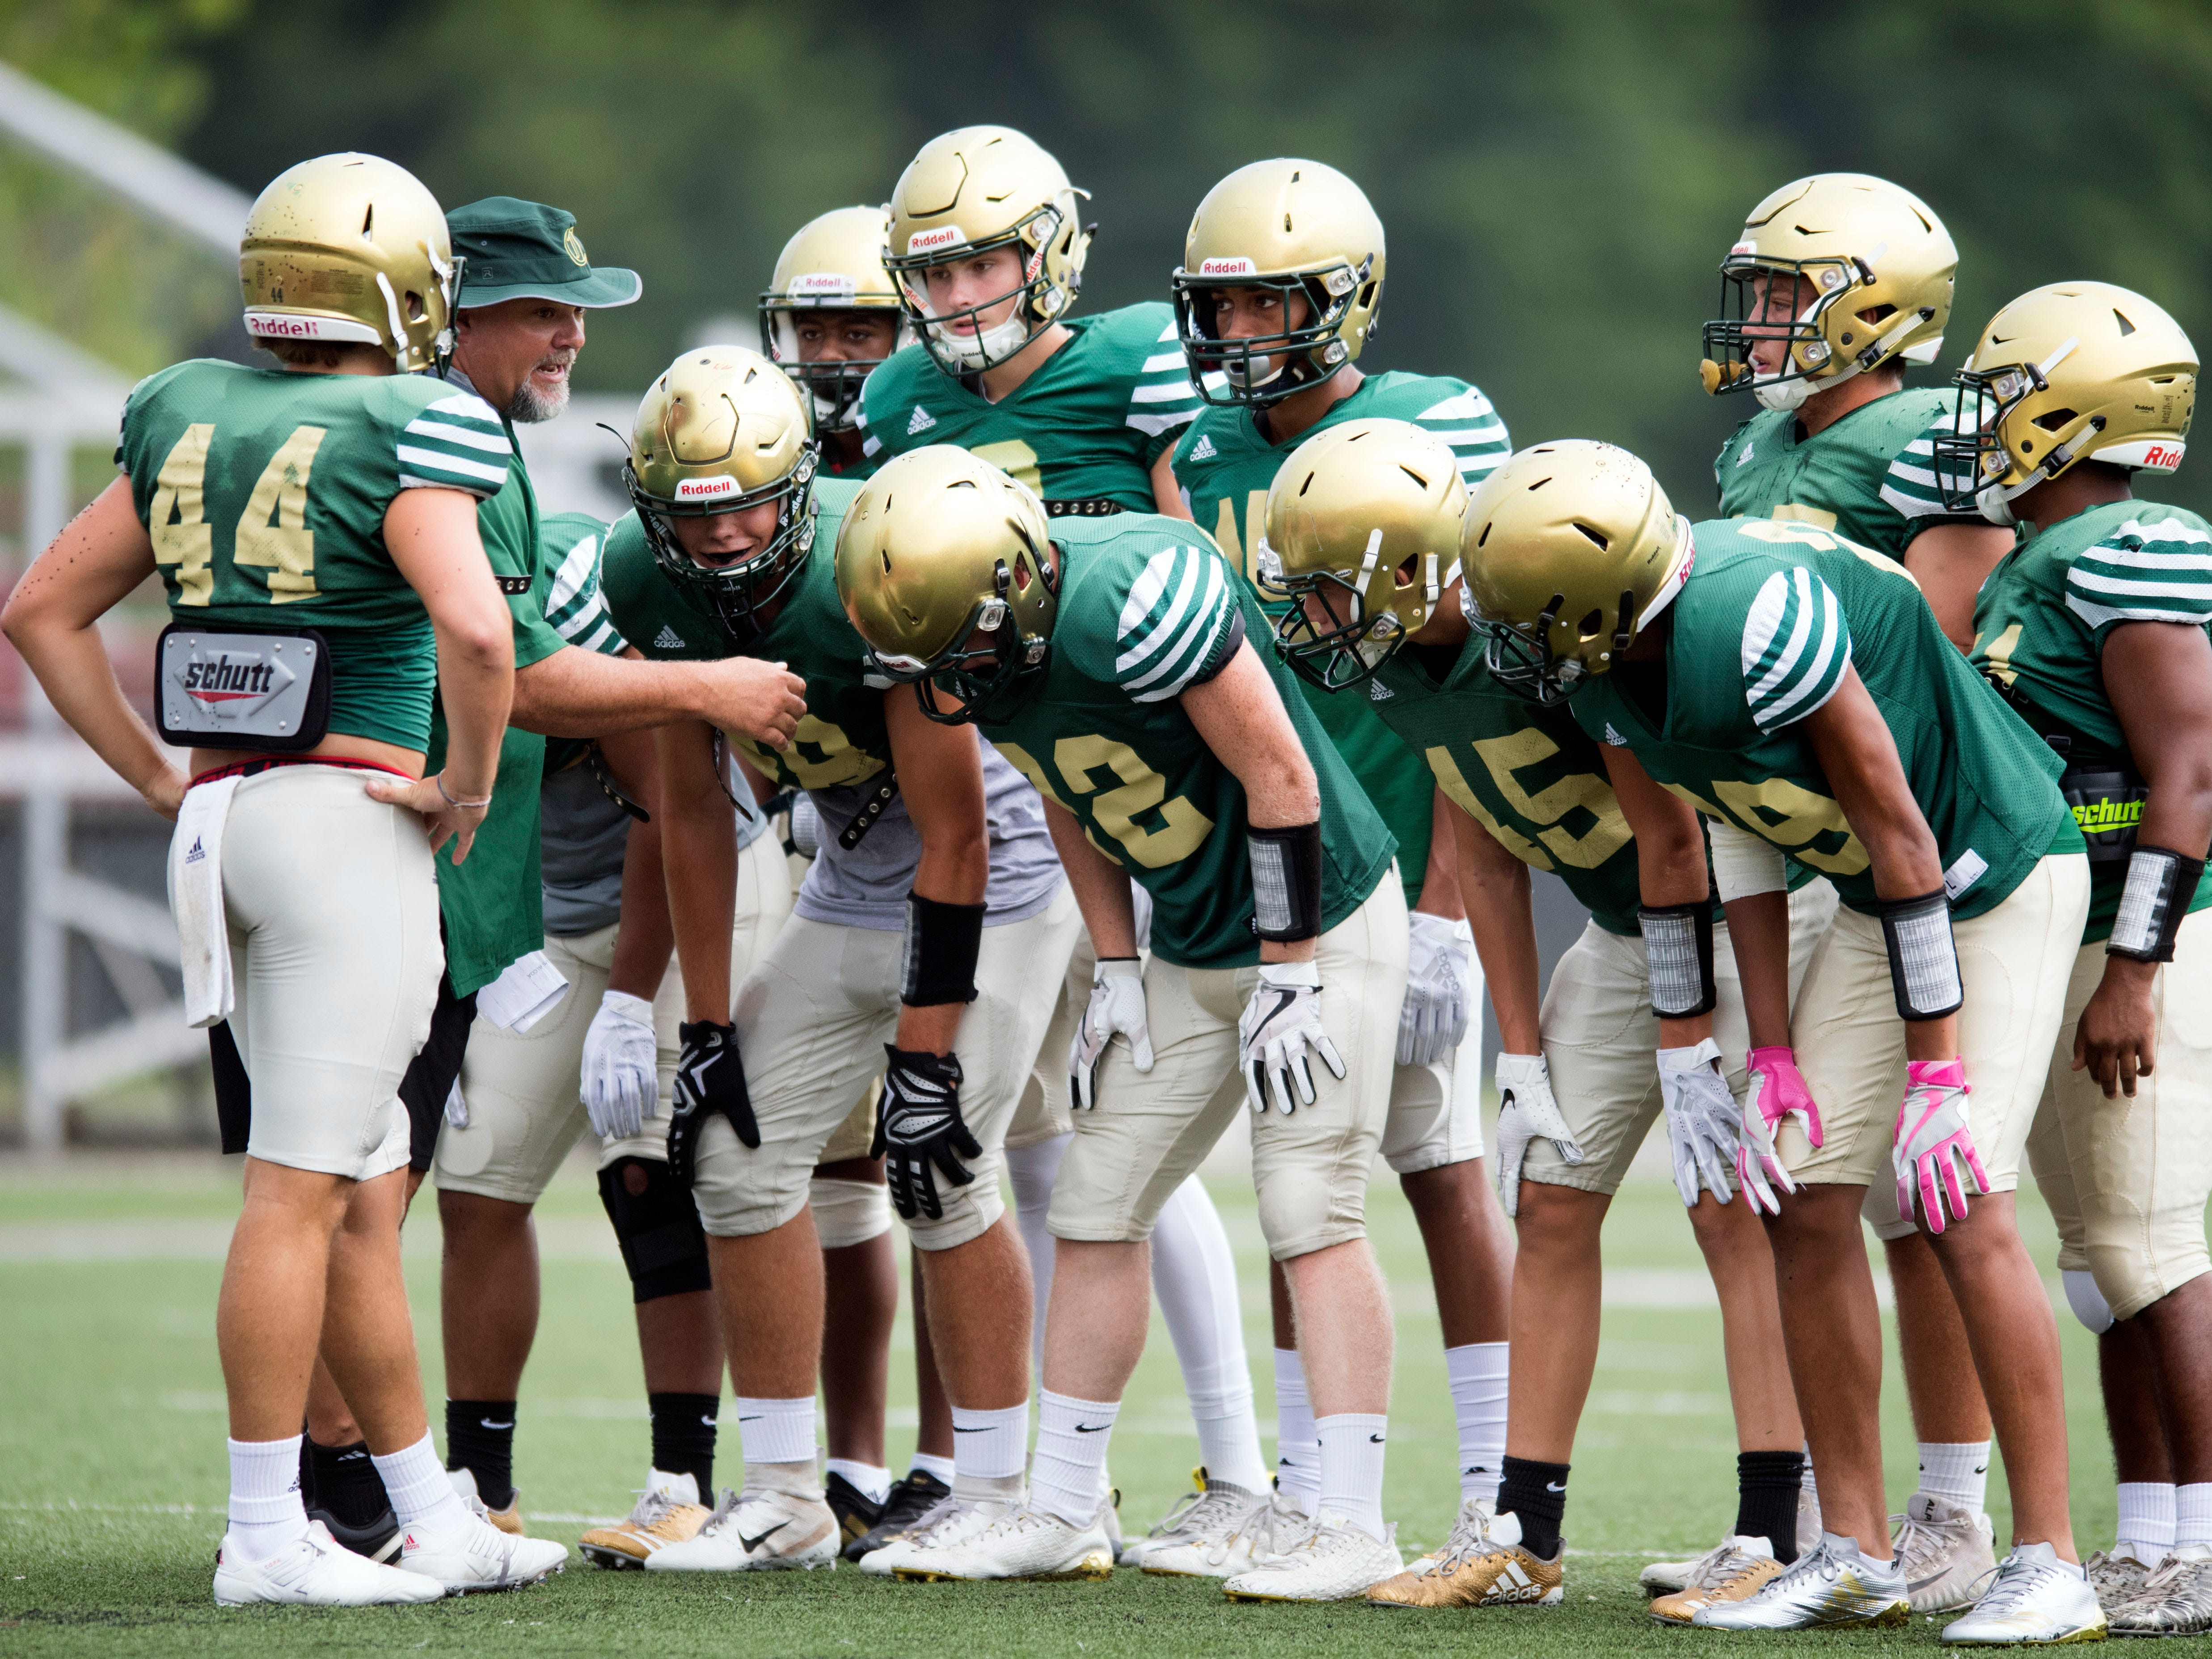 Knoxville Catholic's special teams huddle during during their football scrimmage at Alcoa on Tuesday, July 31, 2018.